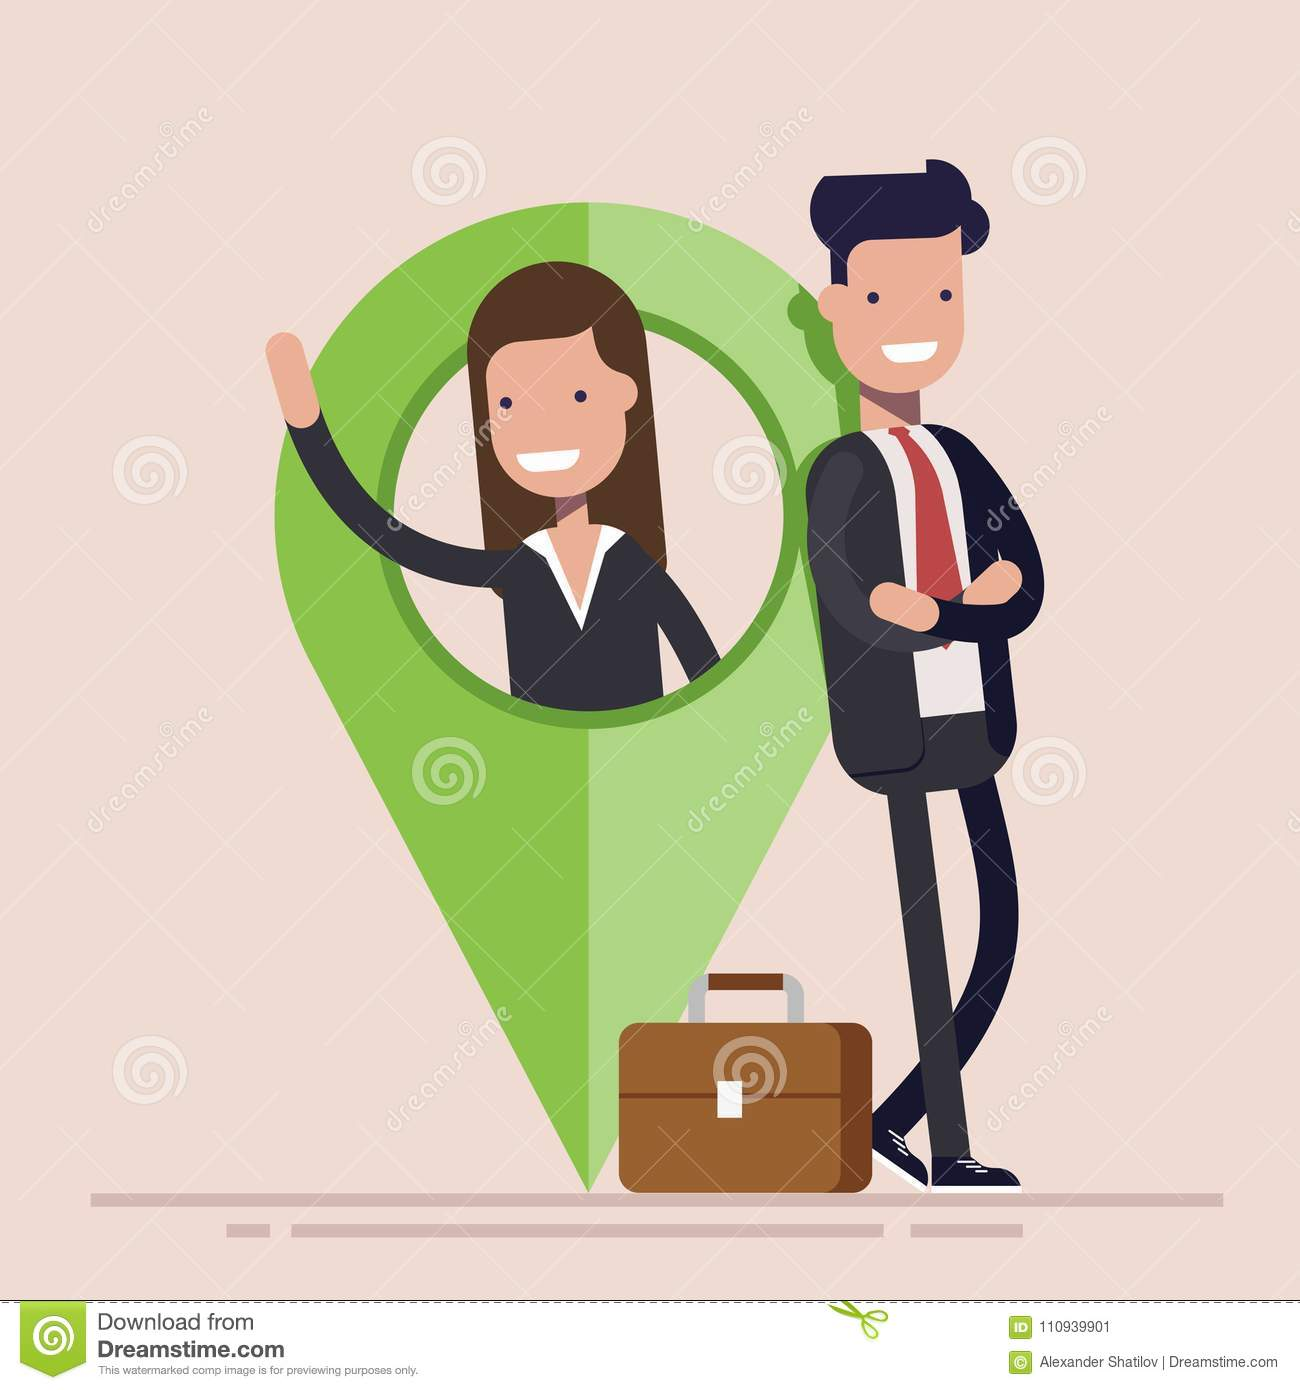 Businessman or manager, man and woman with map pointer. Business location. Flat vector illustration.